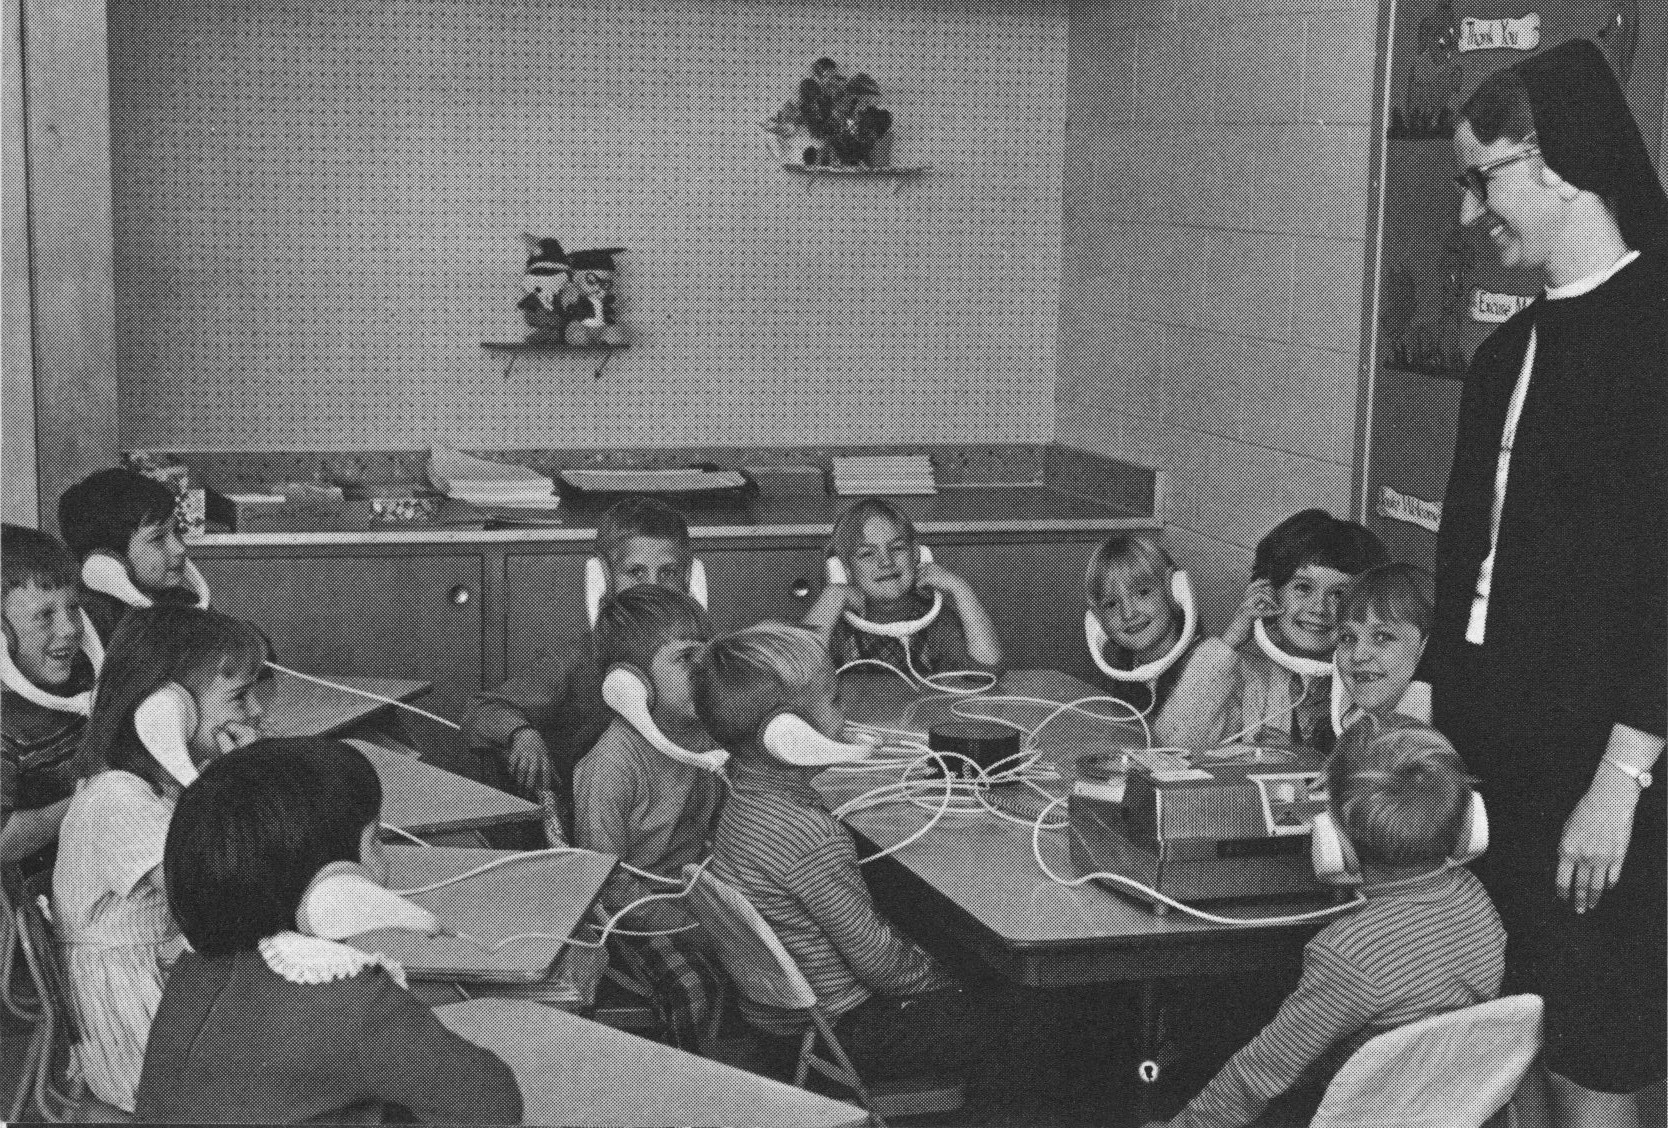 Students in the learning center at St. Louis School, c. 1970.